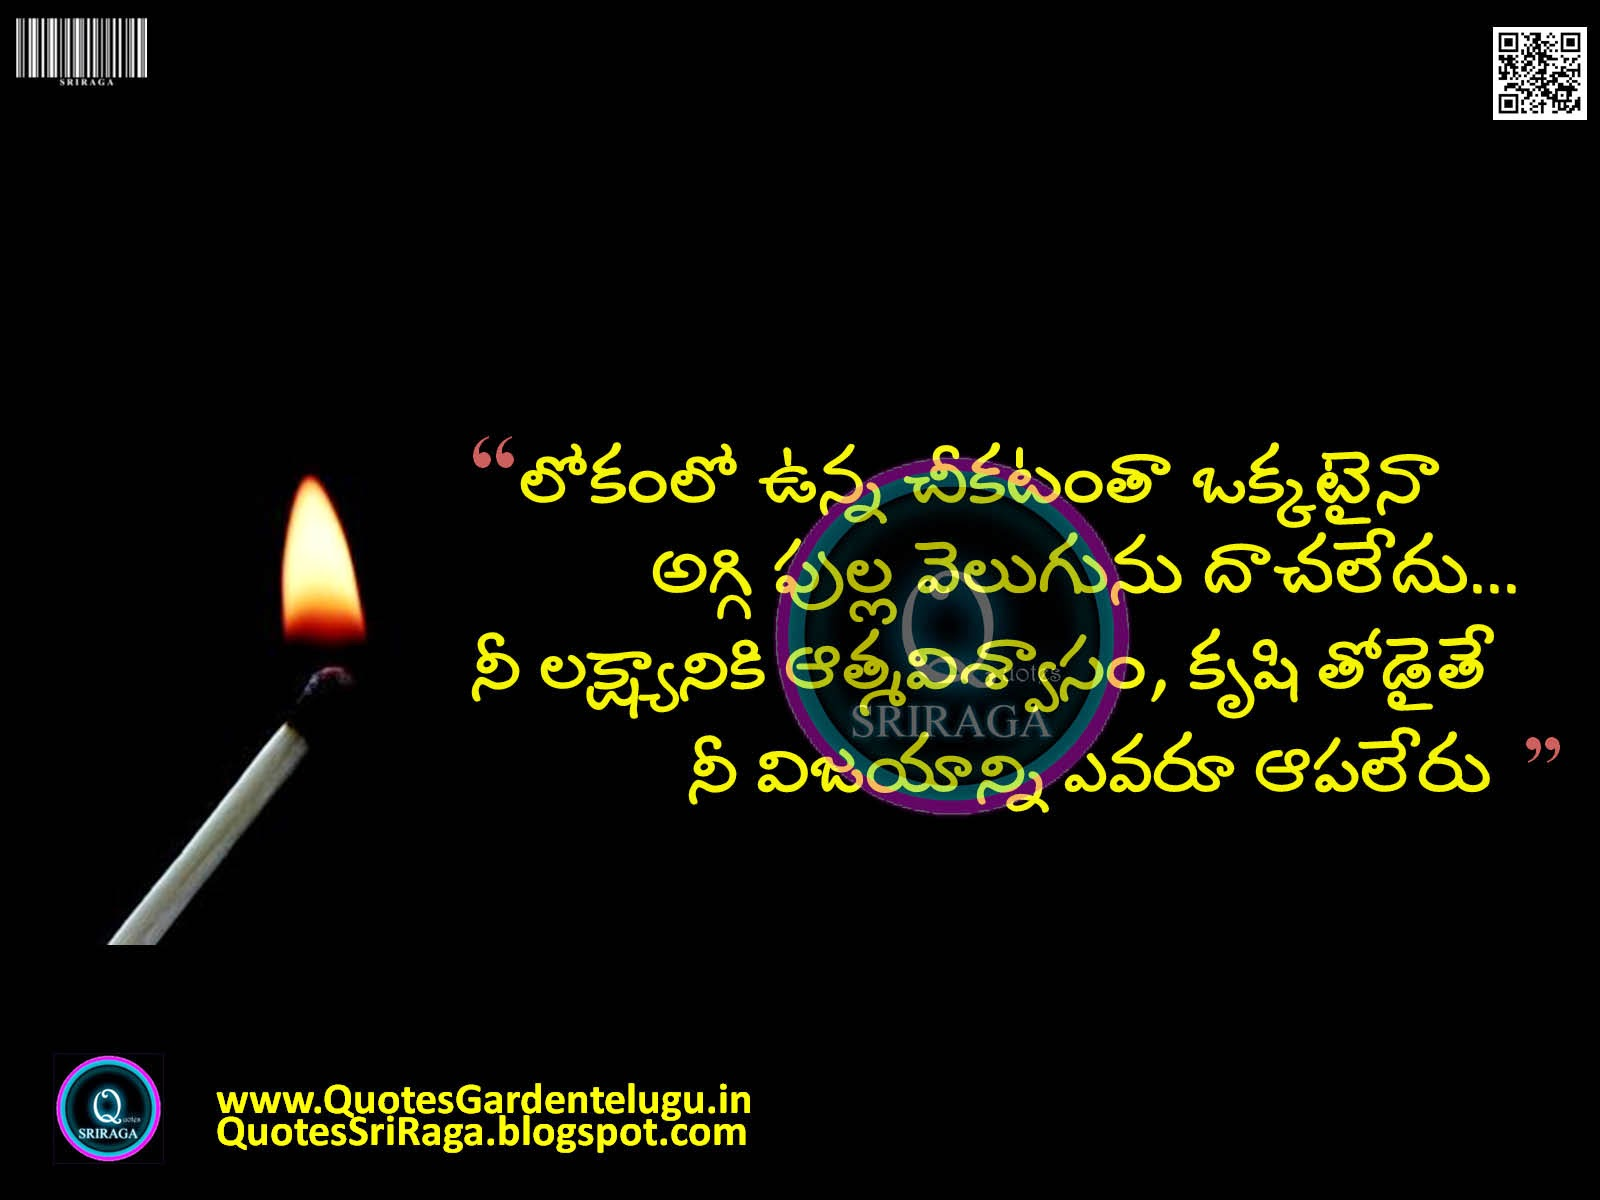 Moral Quotes Wallpapers Inspirational Life Quotes In Telugu With Hd